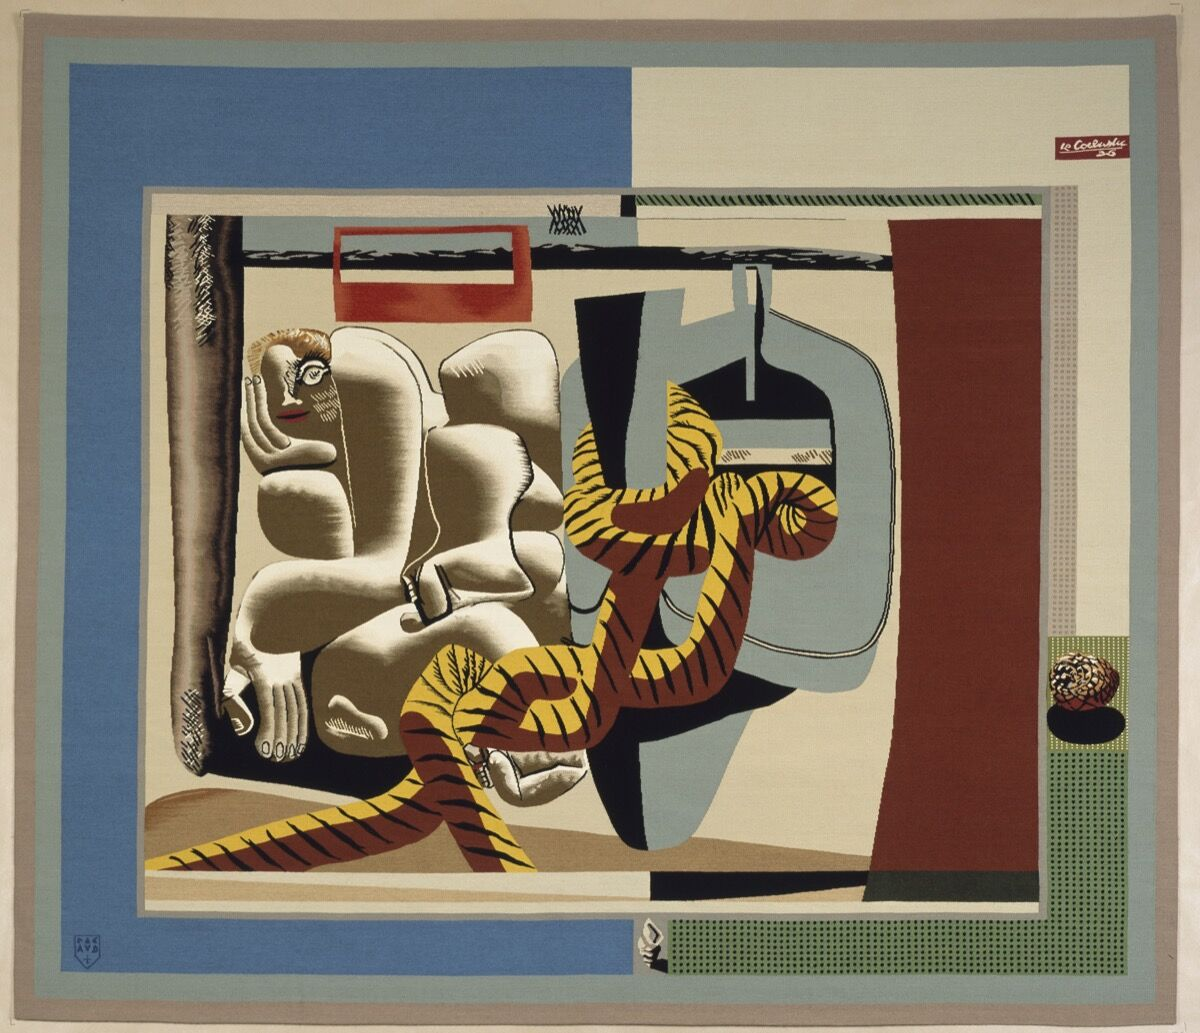 Le Corbusier, Marie Cuttoli,  1936. Wool and silk. © F.L.C. / ADAGP, Paris / Artists Rights Society (ARS), New York 2019. Courtesy of Fondation Le Corbusier, Paris and the Barnes Foundation, Philadelphia.